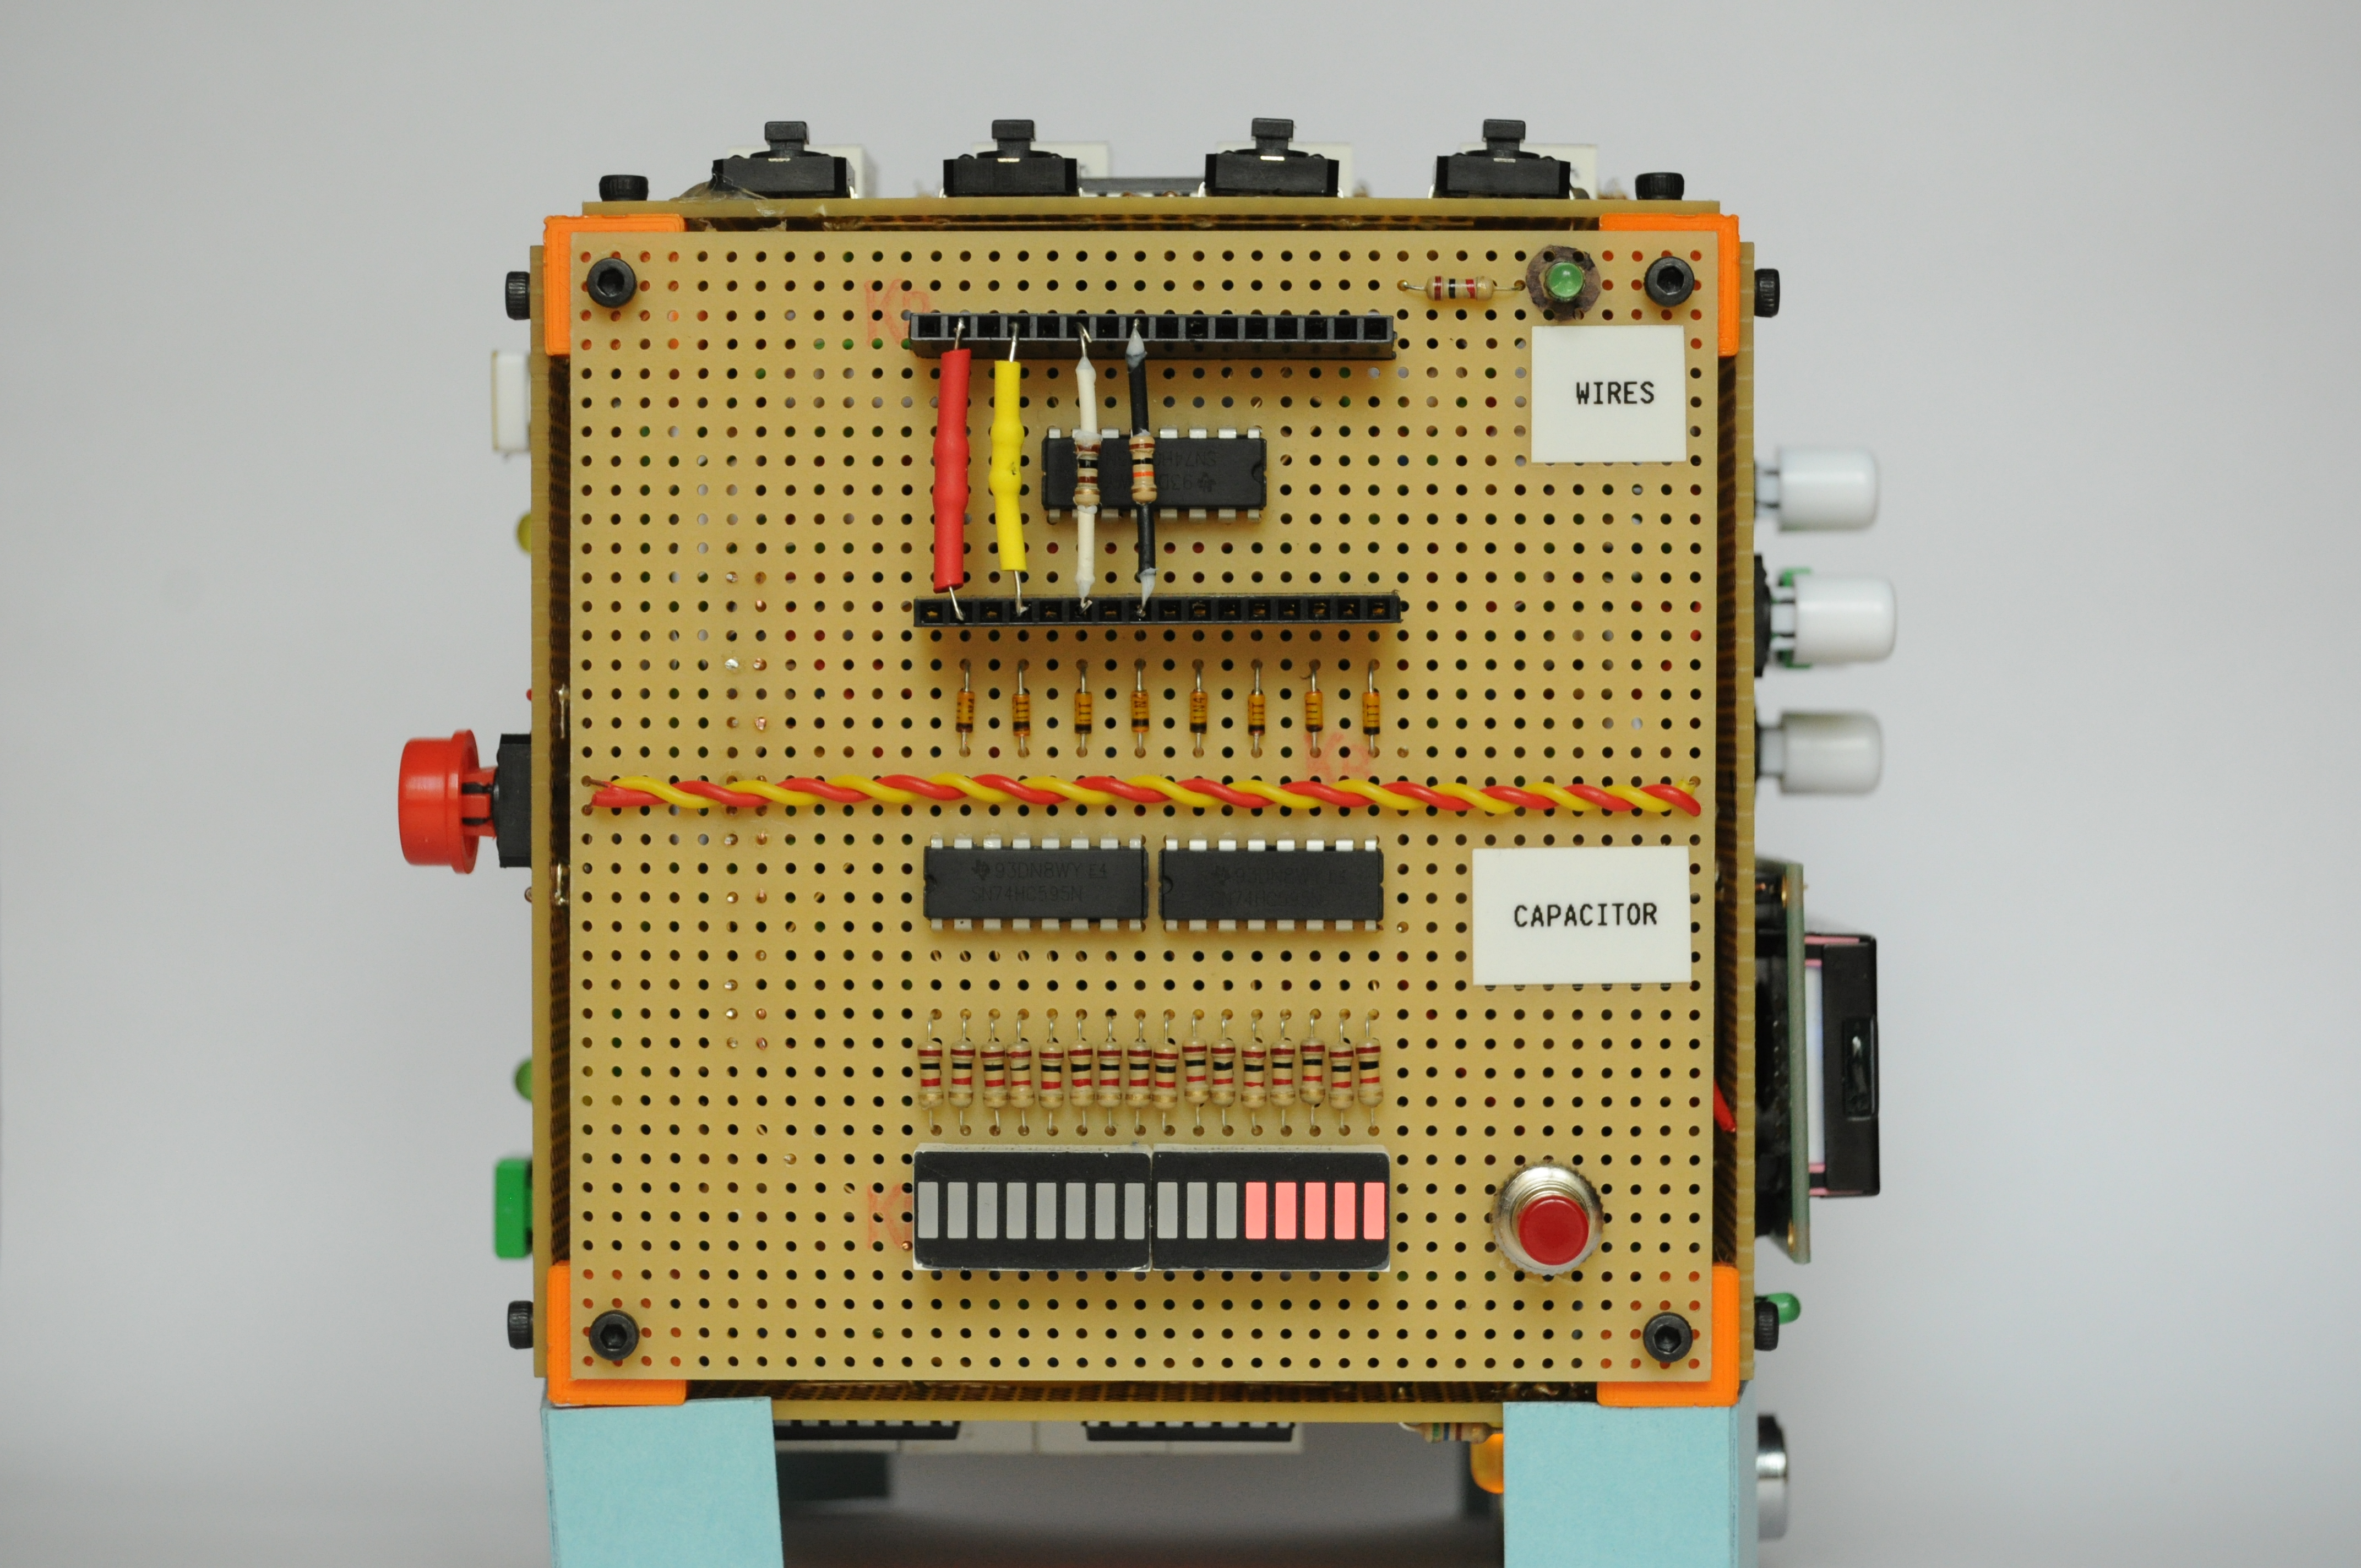 Wires/Capacitor